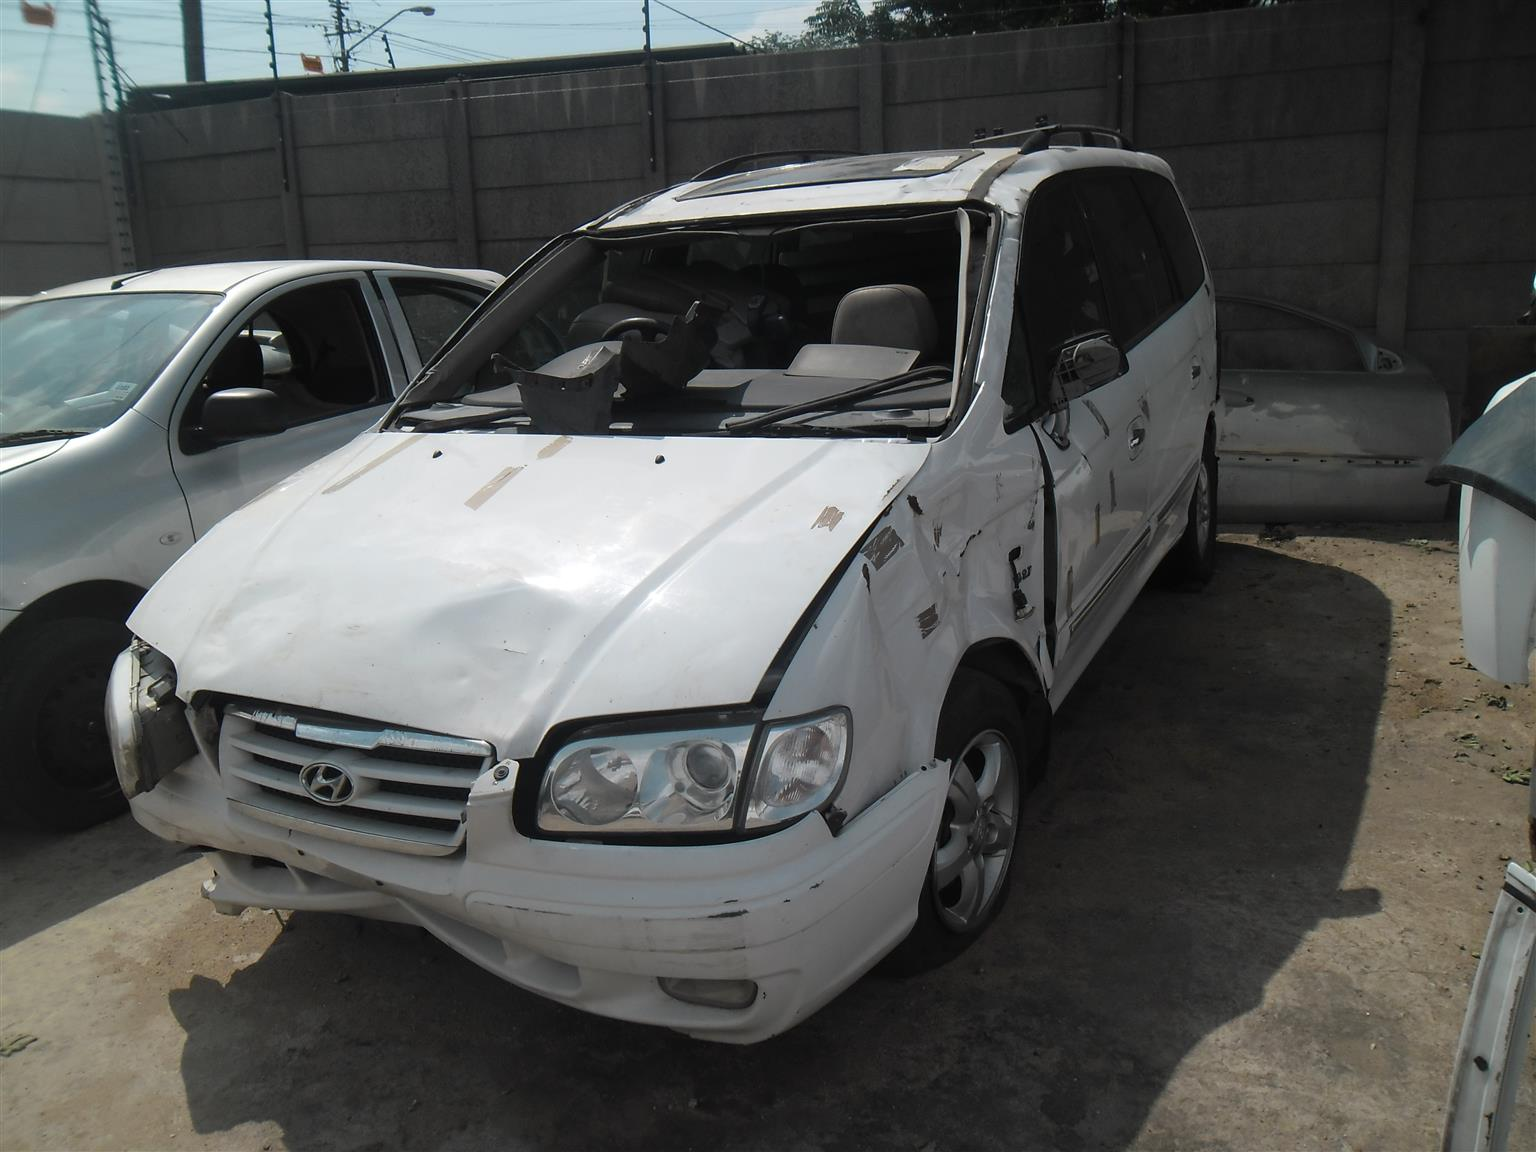 HYUNDAI TRAJET V6 STRIPPING FOR SPARES ENGINE FOR SALE